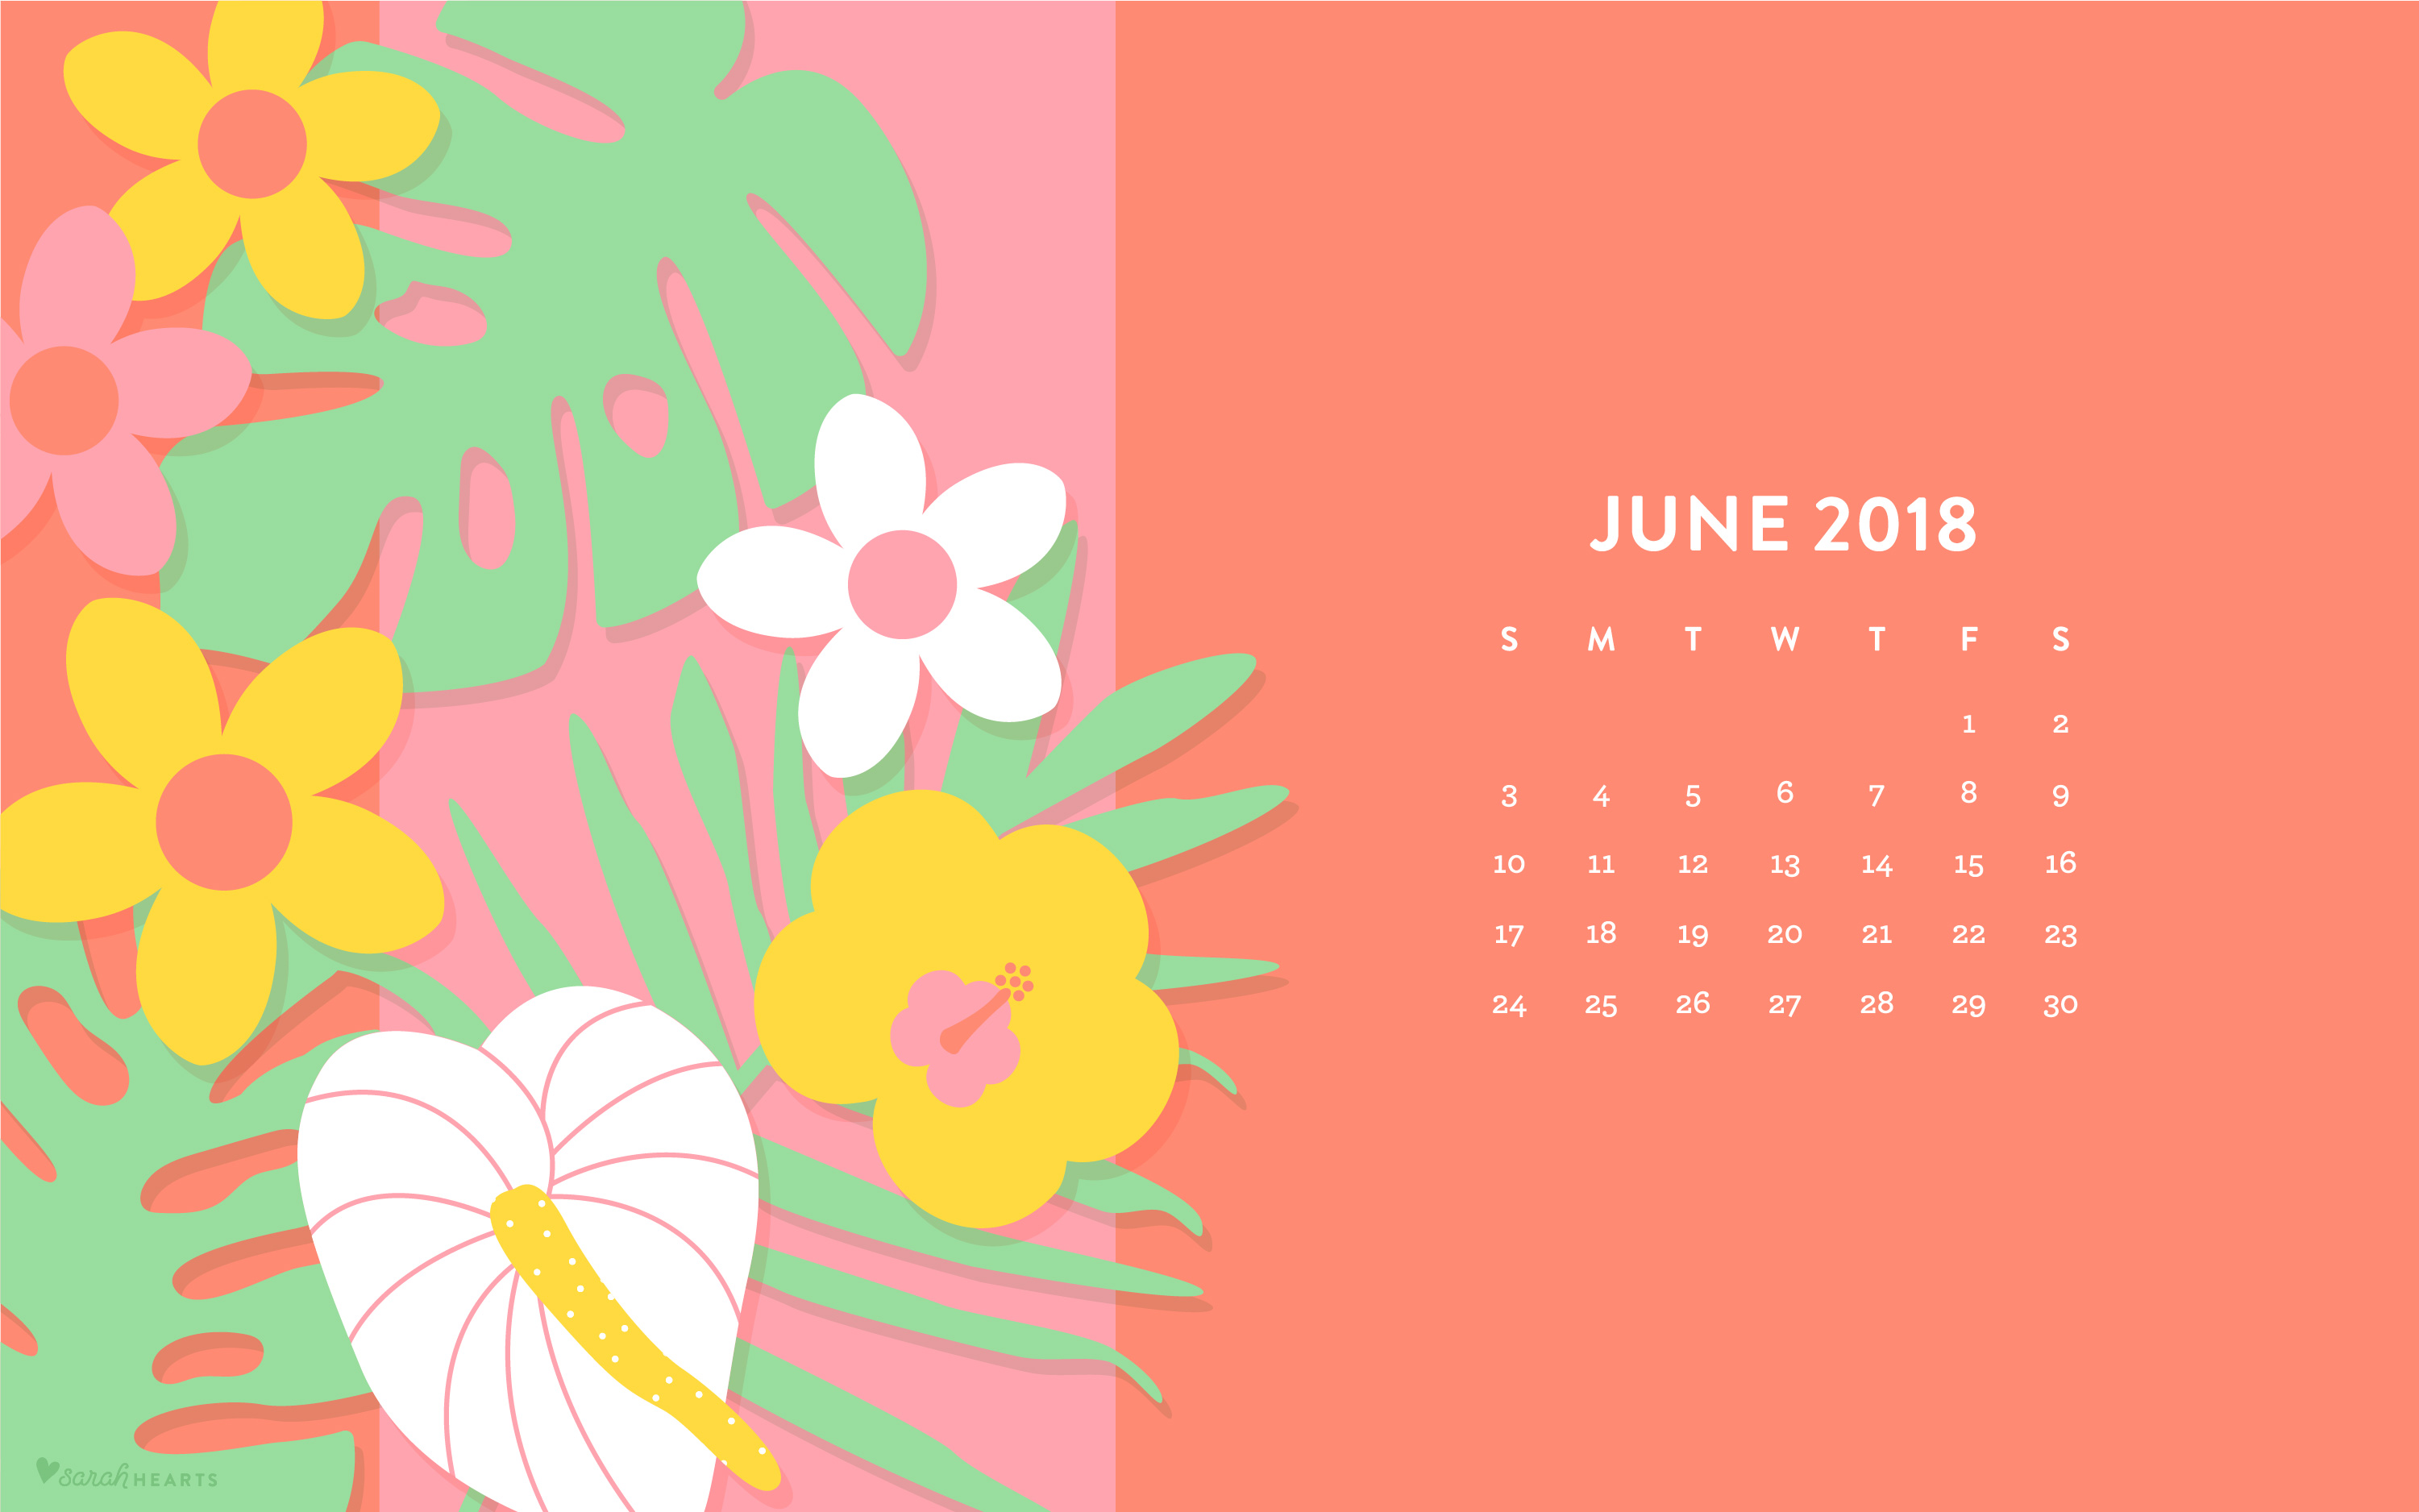 june 2018 tropical flowers wallpaper - sarah hearts